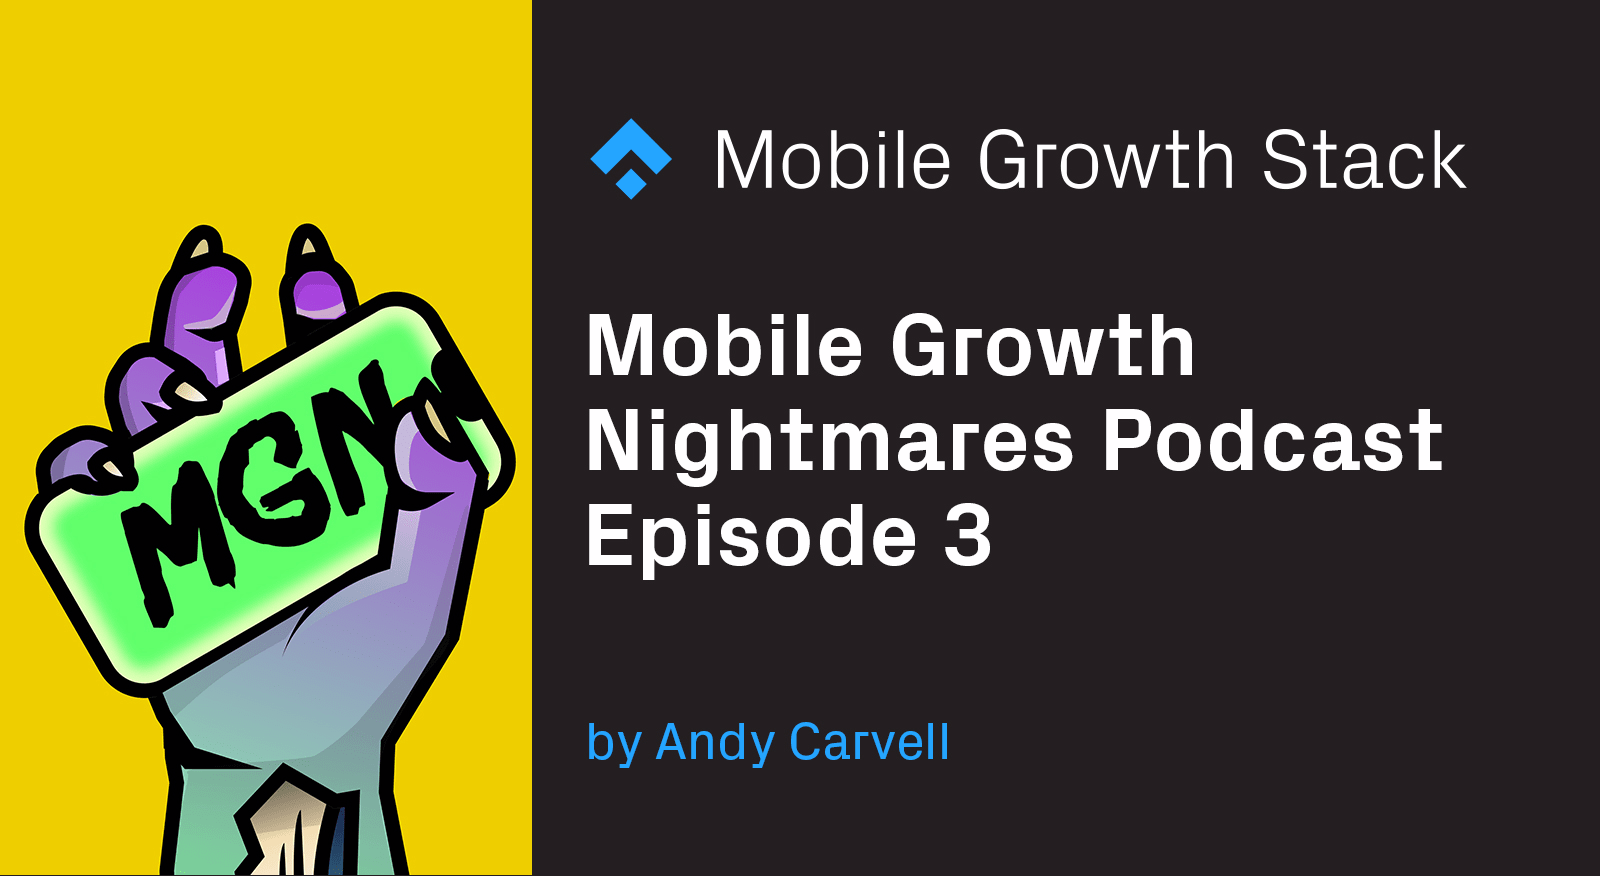 Mobile Growth Nightmares Podcast Episode 3 starring Thomas Petit from 8Fit